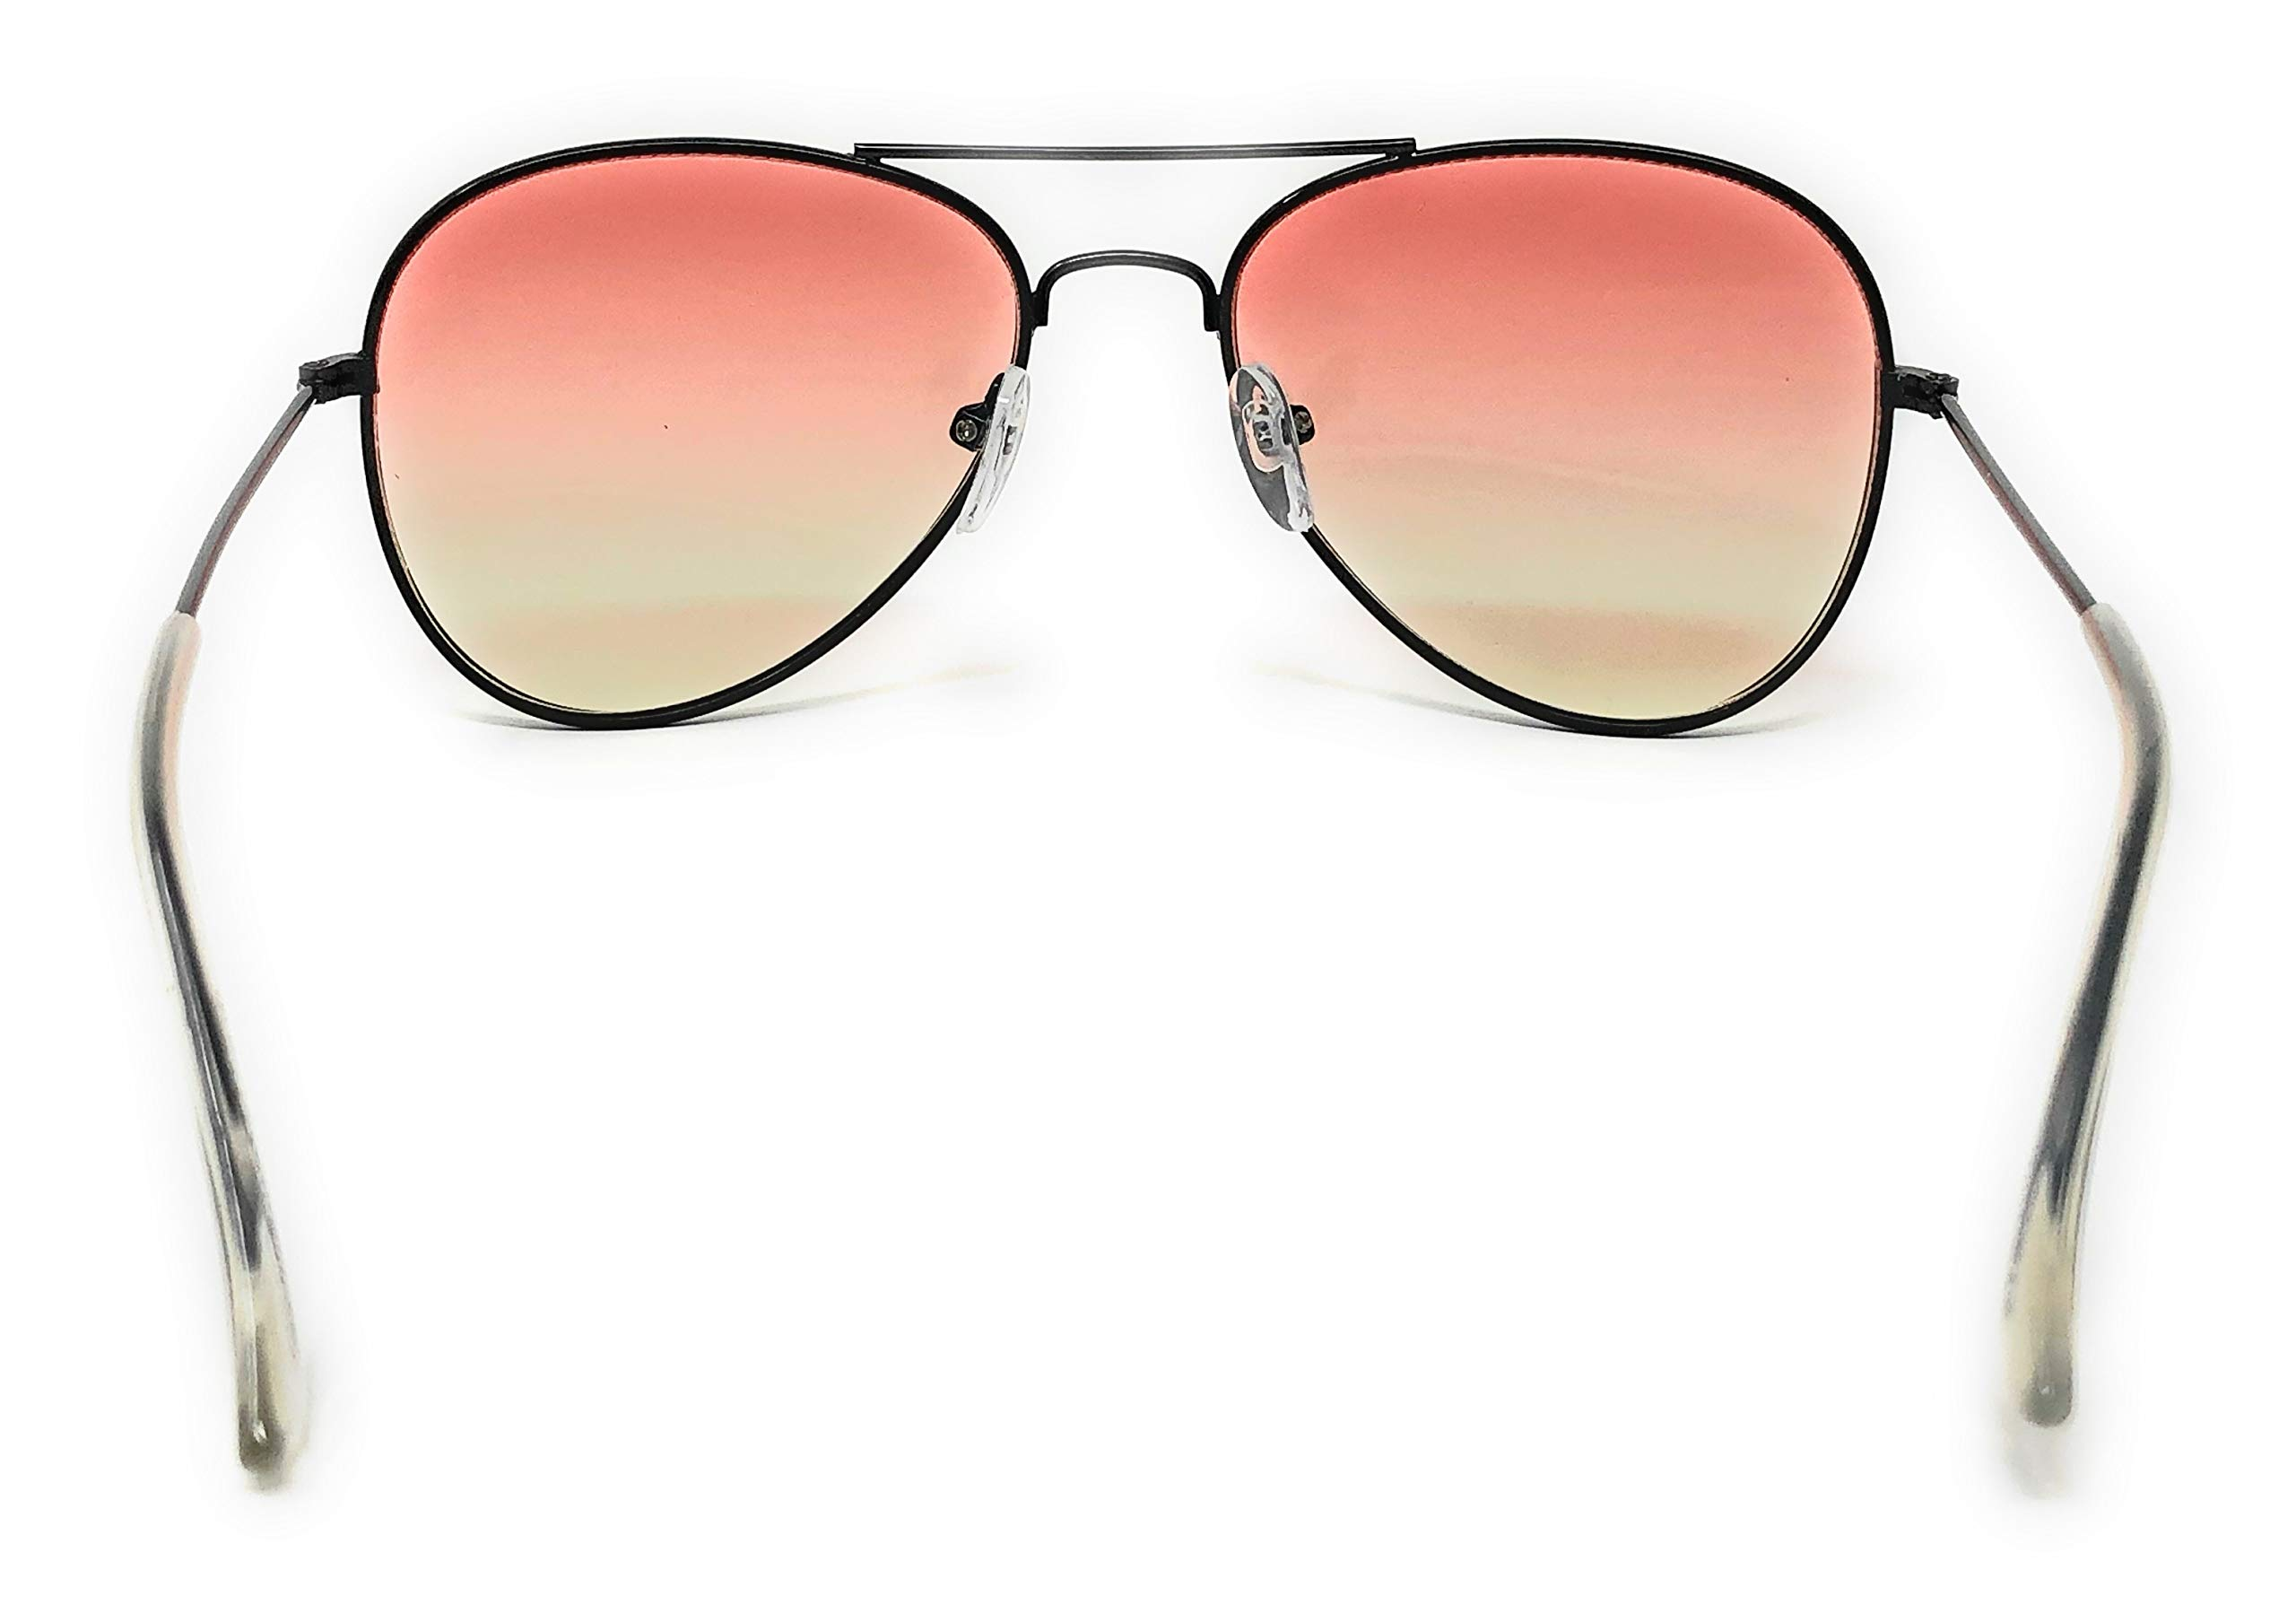 My Shades - Little Children's Kids Classic Retro Aviator Sunglasses Metal Frame Ages 2 to 5 (Two Tone, Orange/Yellow) by WebDeals (Image #5)